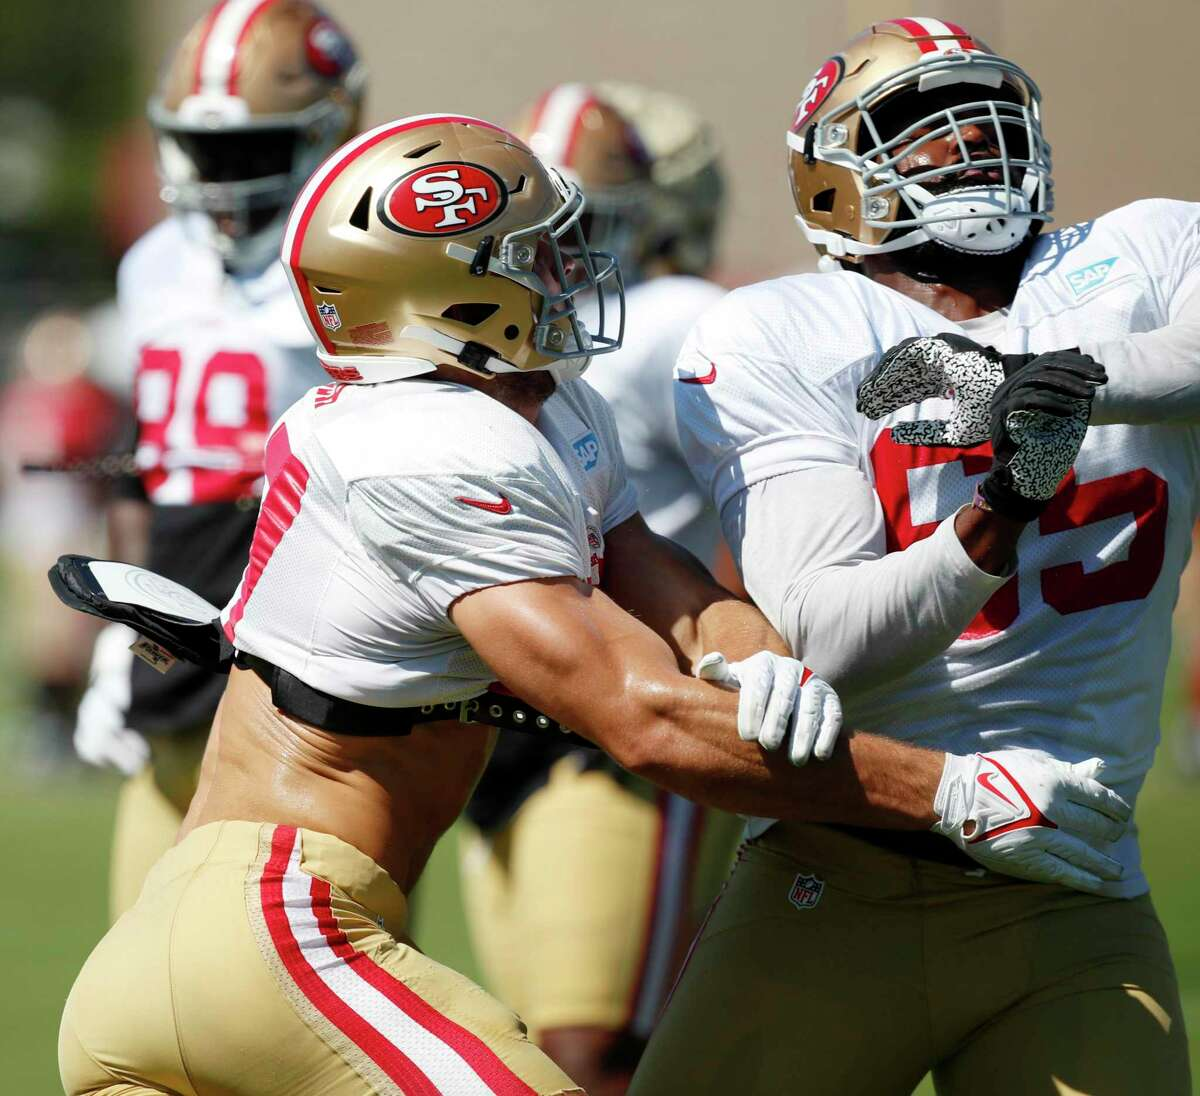 San Francisco 49ers defensive end Nick Bosa works against offensive guard Aaron Banks takes part in drills at an NFL football training camp in Santa Clara, Calif., Tuesday, Aug. 3, 2021.